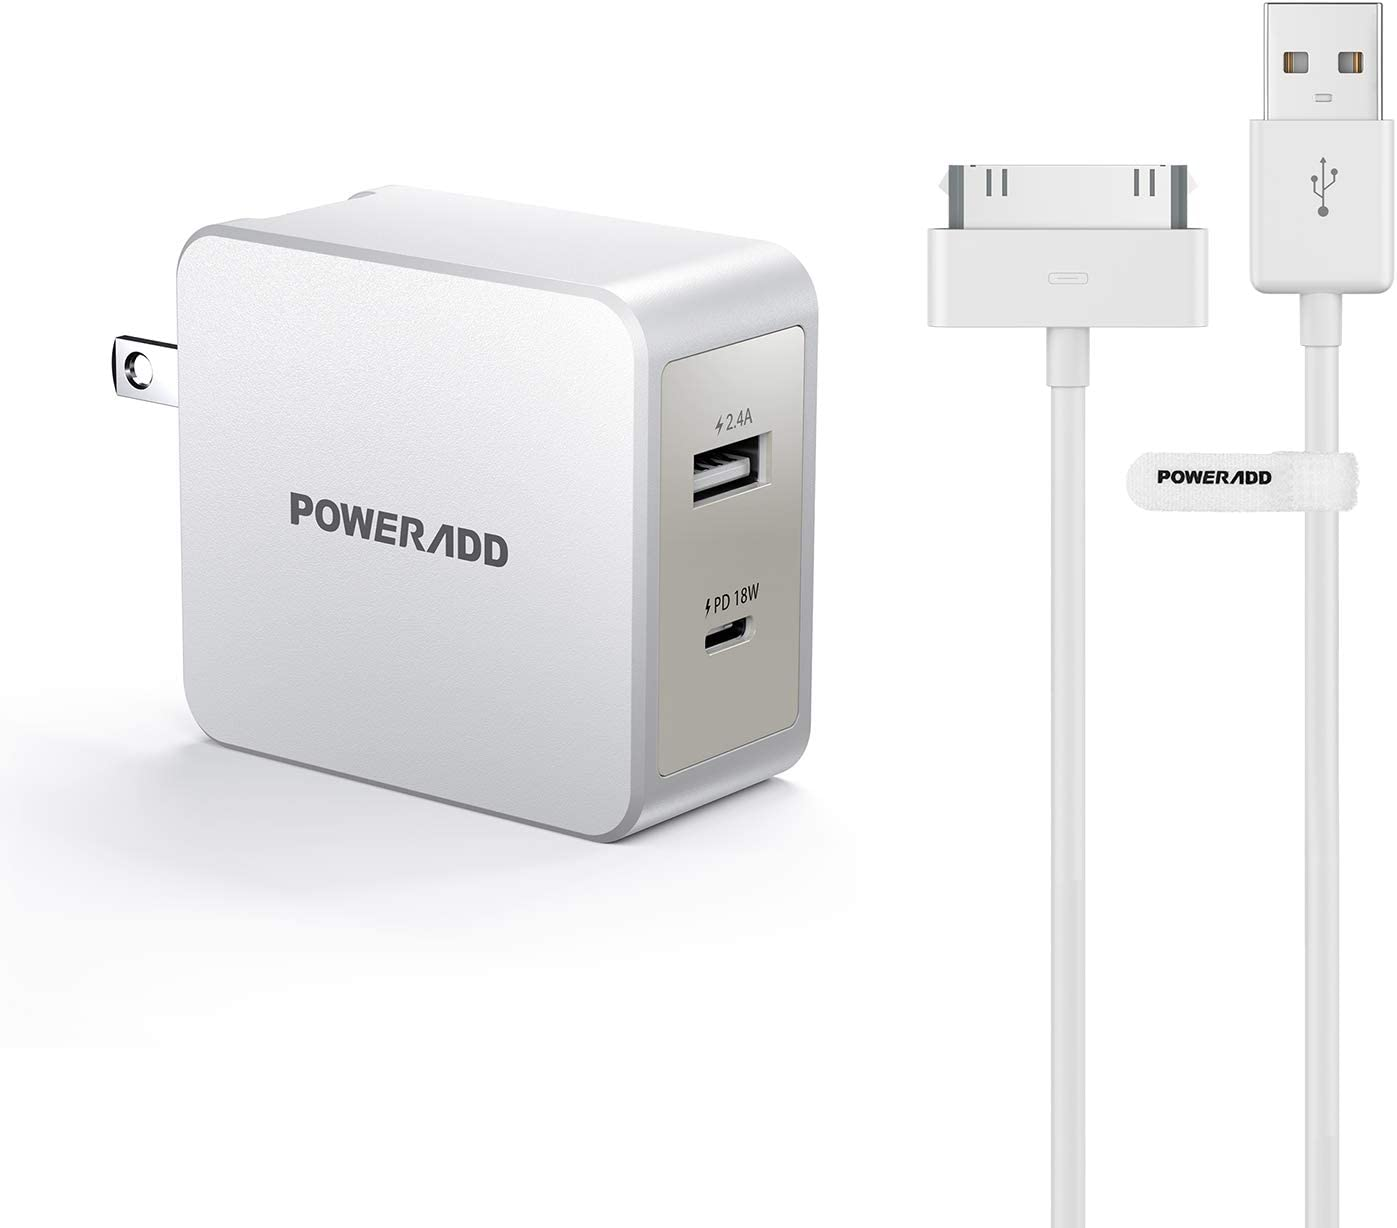 USB C Wall Charger POWERADD 30W Dual Port Type C Charger with 18W Power Delivery and Foldable Plug Apple Certified iPhone 4 4s 3G 3GS iPad 1 2 3 iPod Touch Nano 30 Pin Charger USB Sync Cable Charging